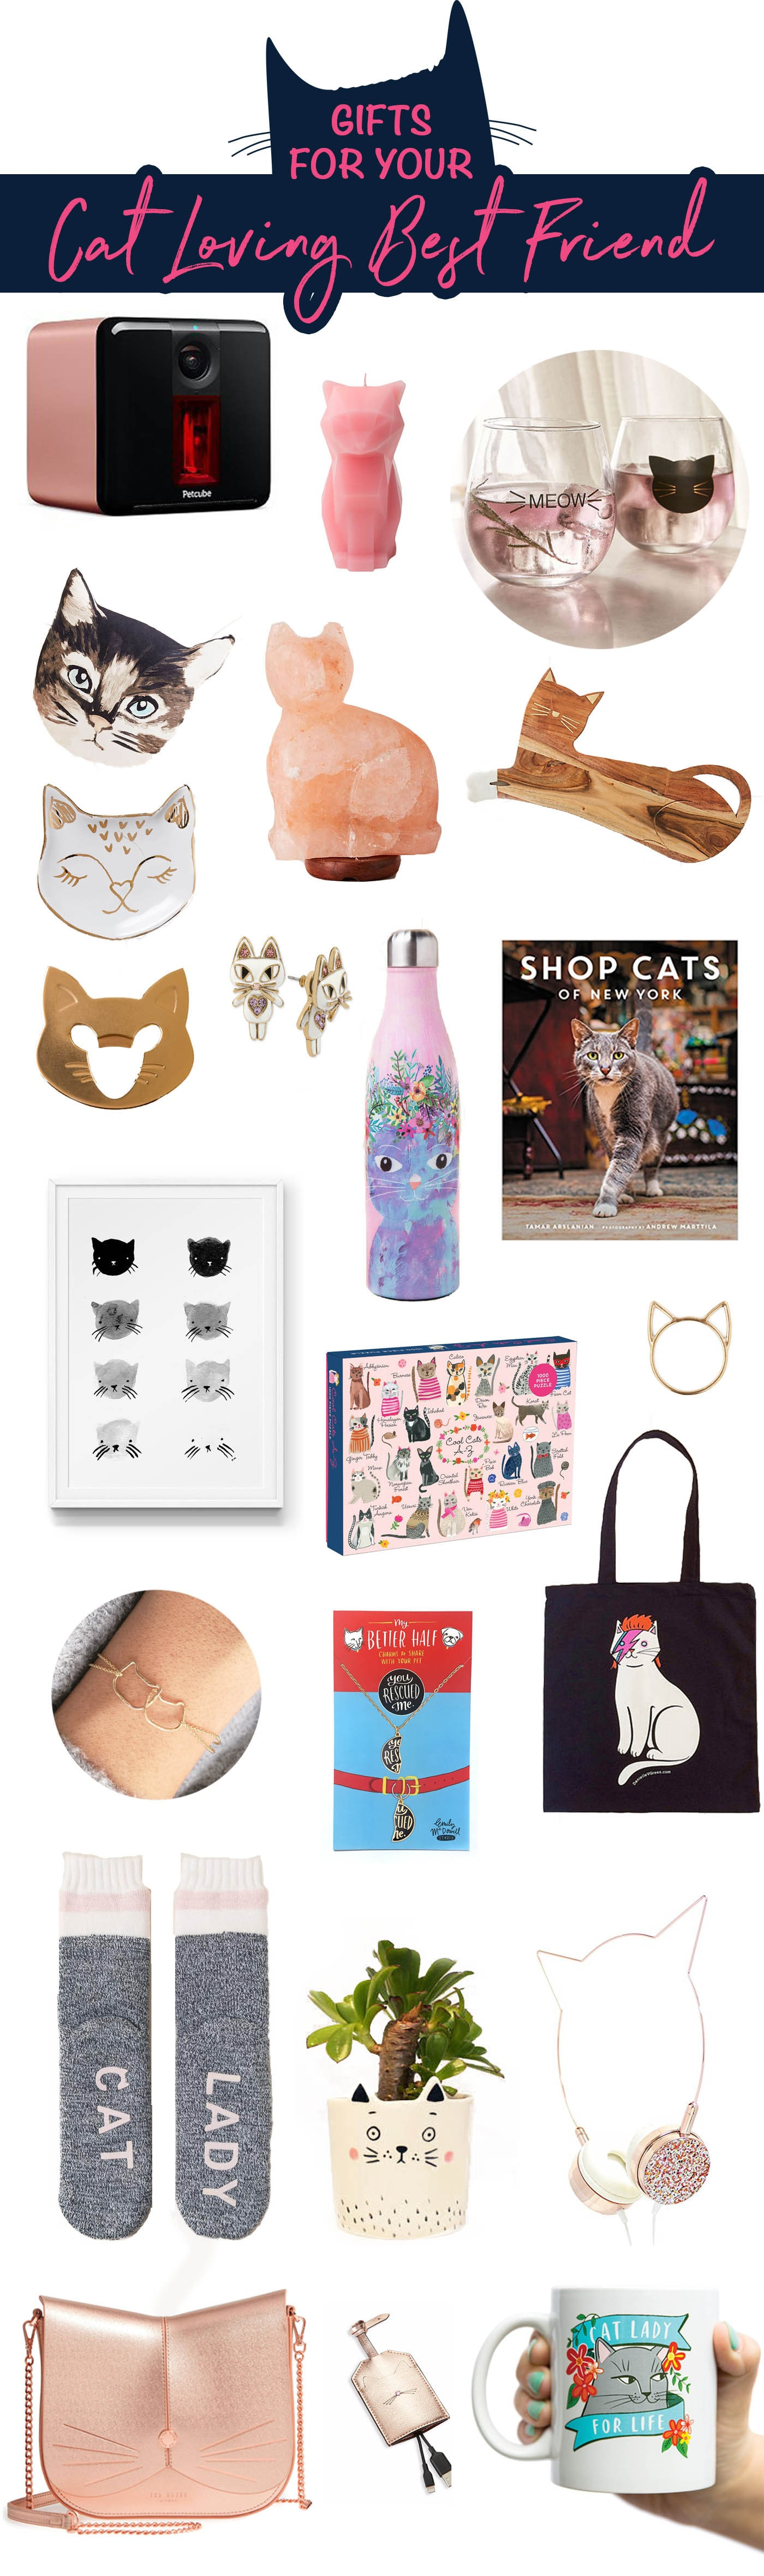 Gifts for your cat-loving best friend. Crazy Cat Lady Gifts. Presents for cat lovers.